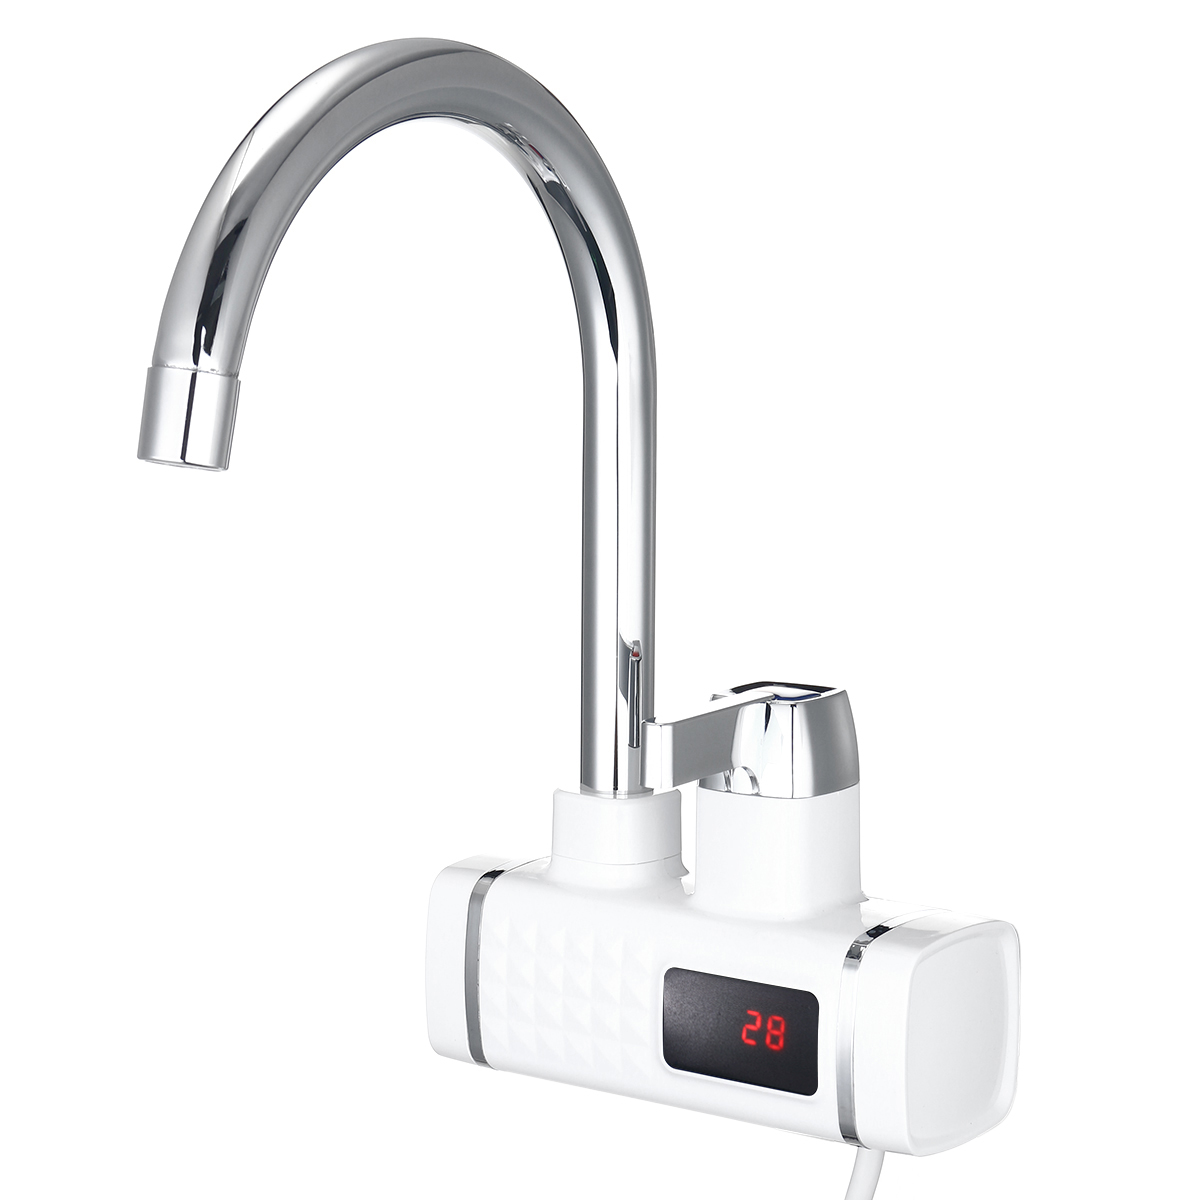 LED Display 220V 3000W Electric Faucet Tap Hot Water Heater Instant Home Kitchen Bathroom